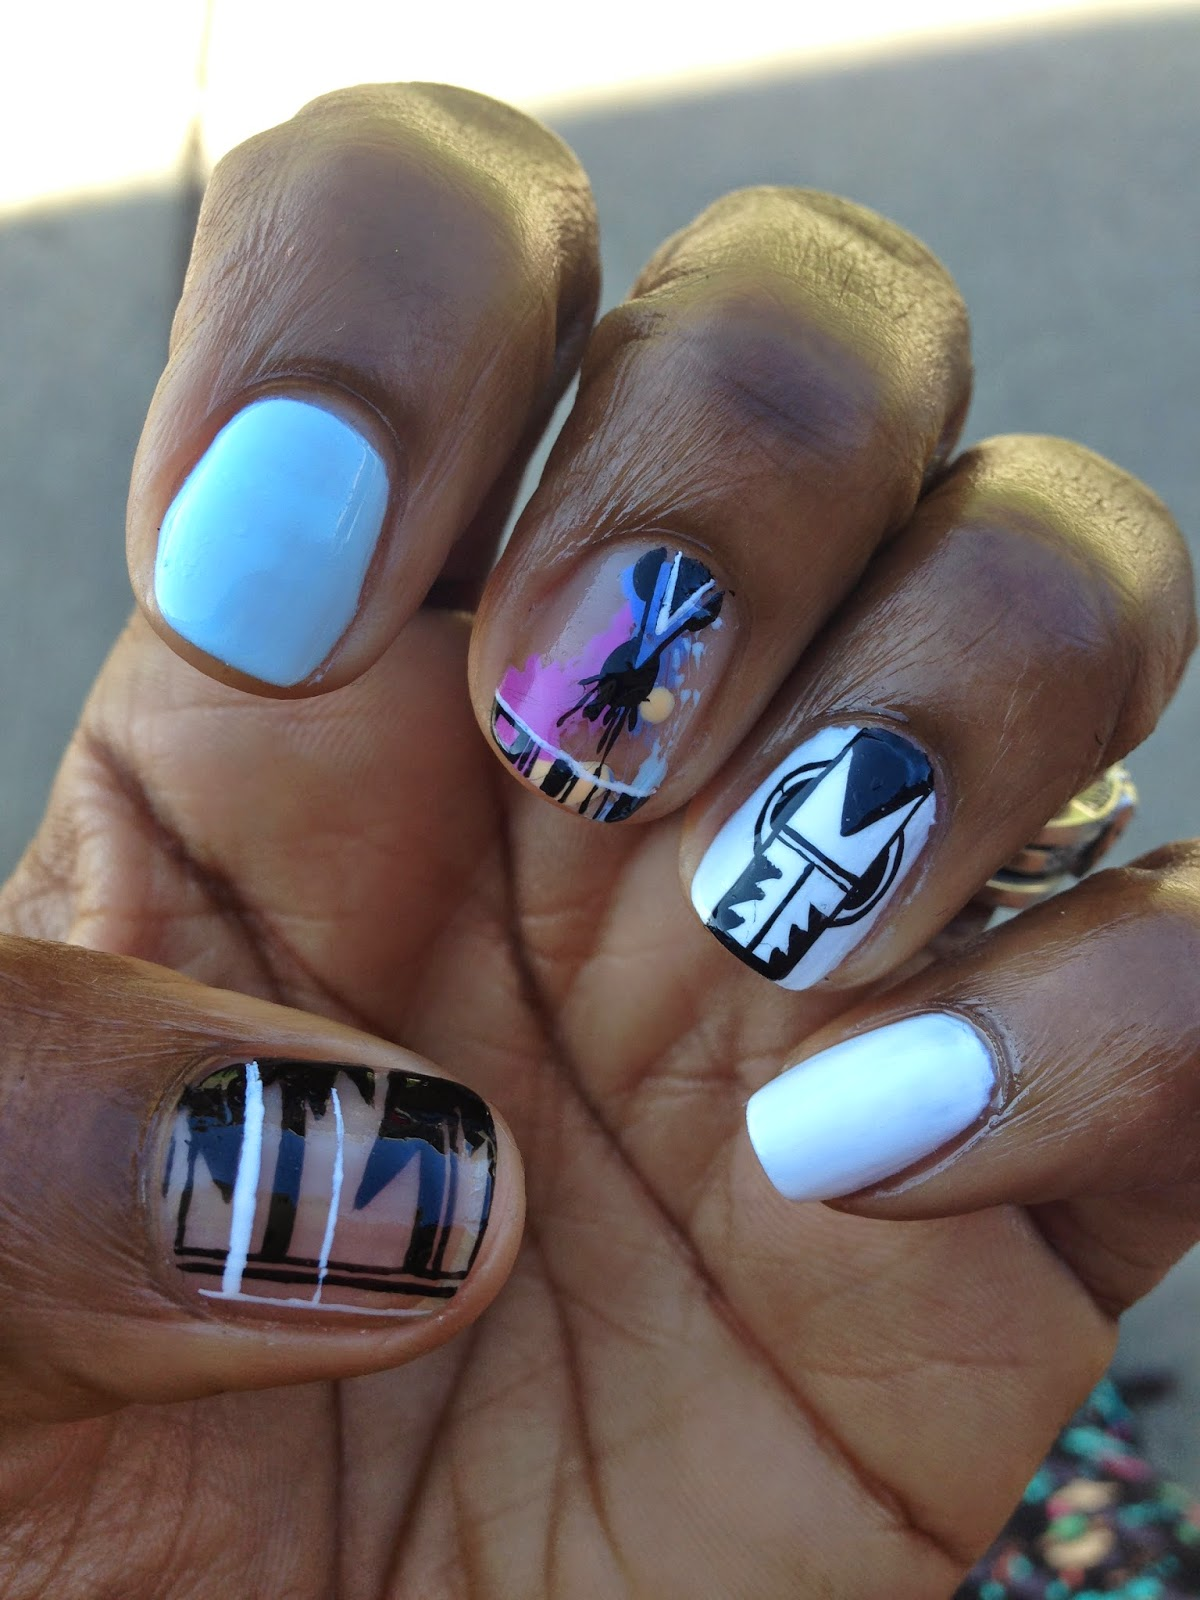 Manicure Monday – The Sorta Spif